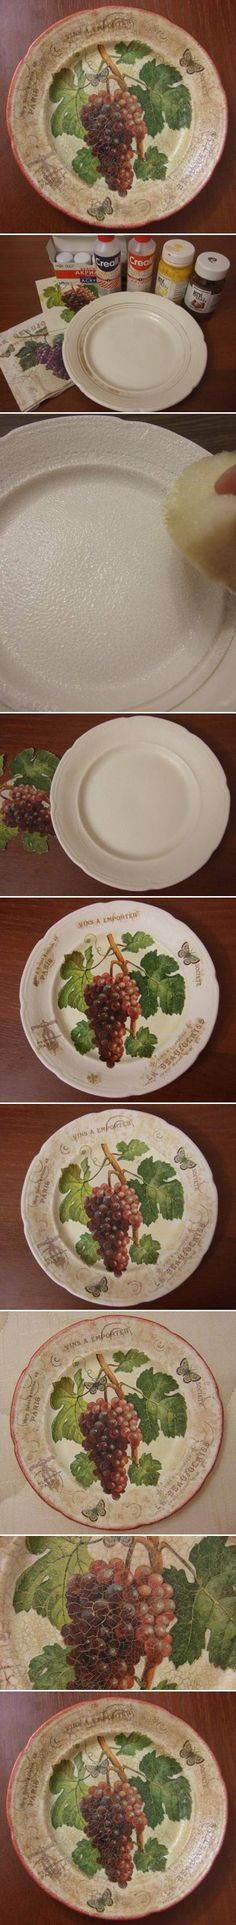 DIY Old Plate Decoupage photo tutorial. Decoupage Plates, Old Plates, Decoupage Furniture, Decoupage Ideas, Diy Projects To Try, Diy And Crafts, Fun Crafts, Arts And Crafts, Project Ideas